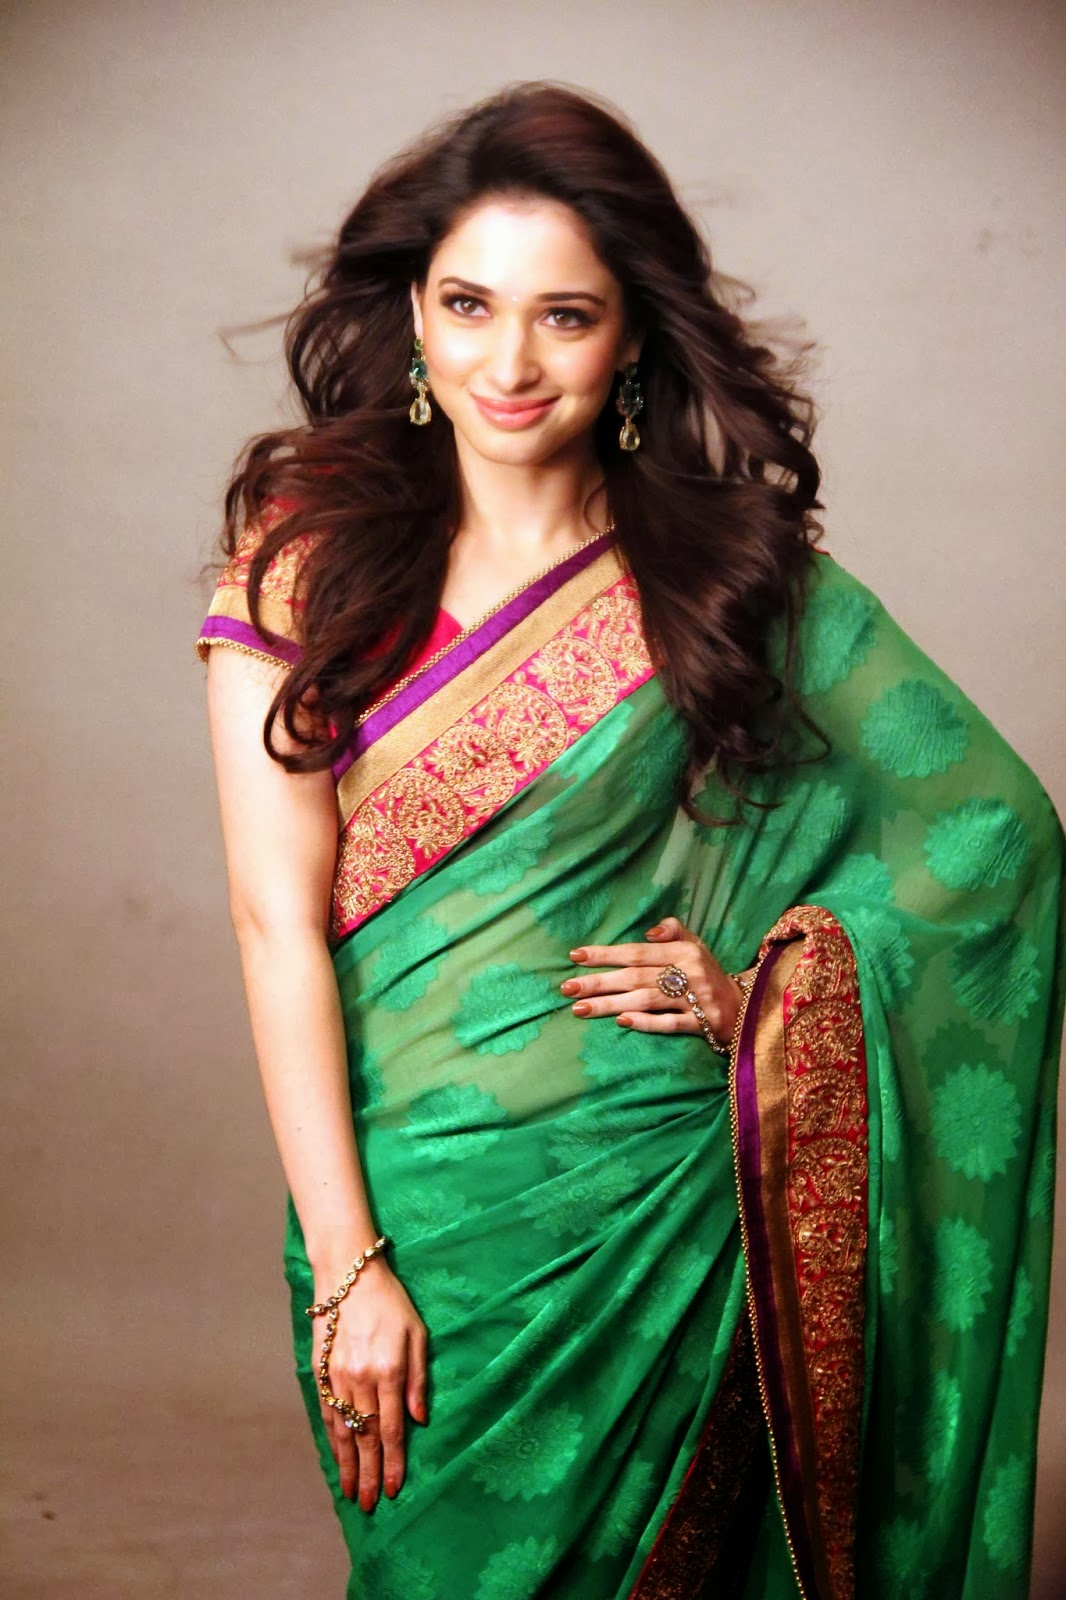 Tamanna Saree Gulte: SRINIVASU WALLPAPERS SS@: Tamanna Hot Wallpapers In Saree